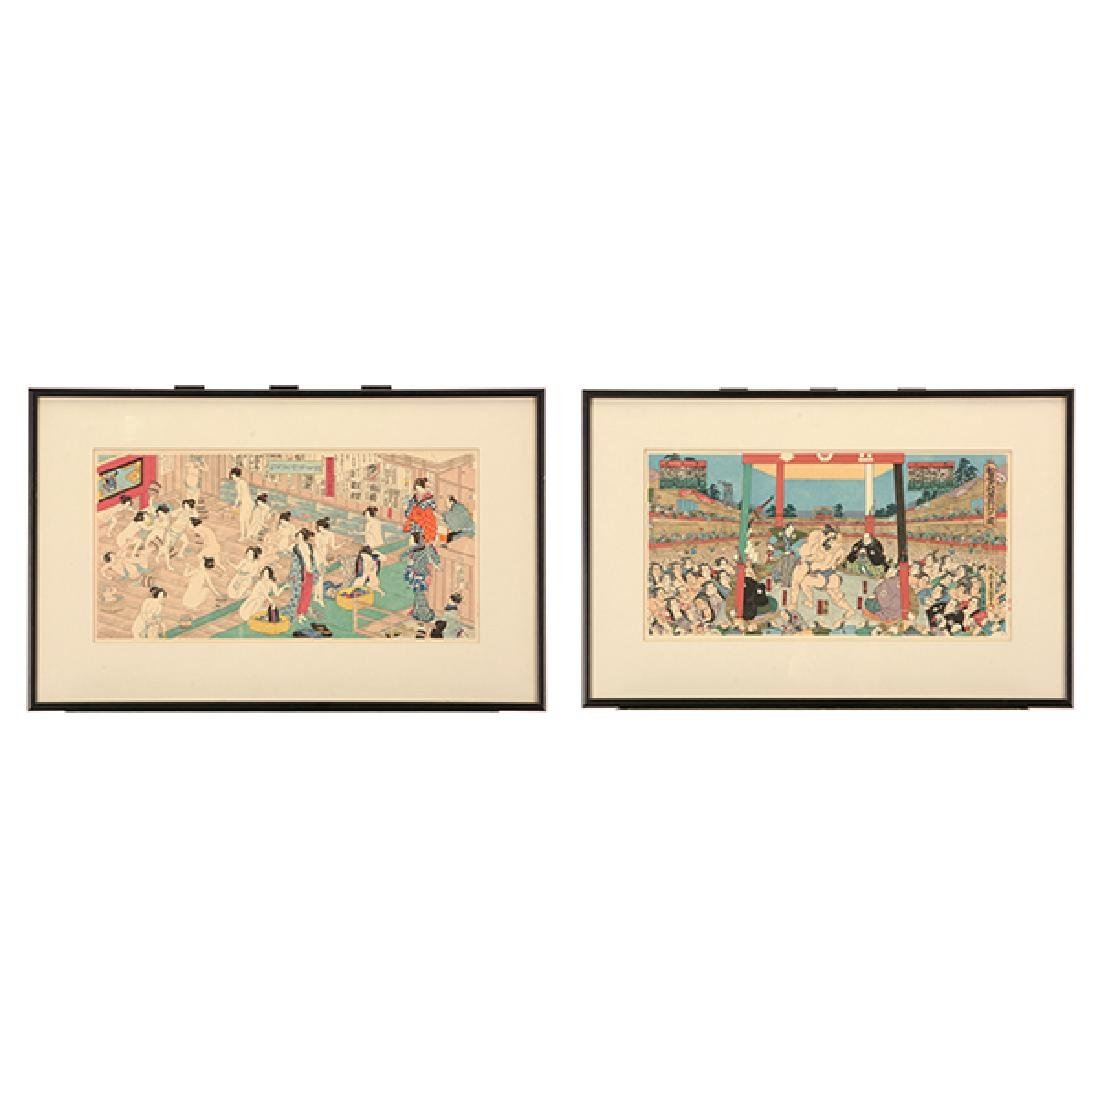 Utagawa Yoshiiku and Toyokuni: Two Woodblocks